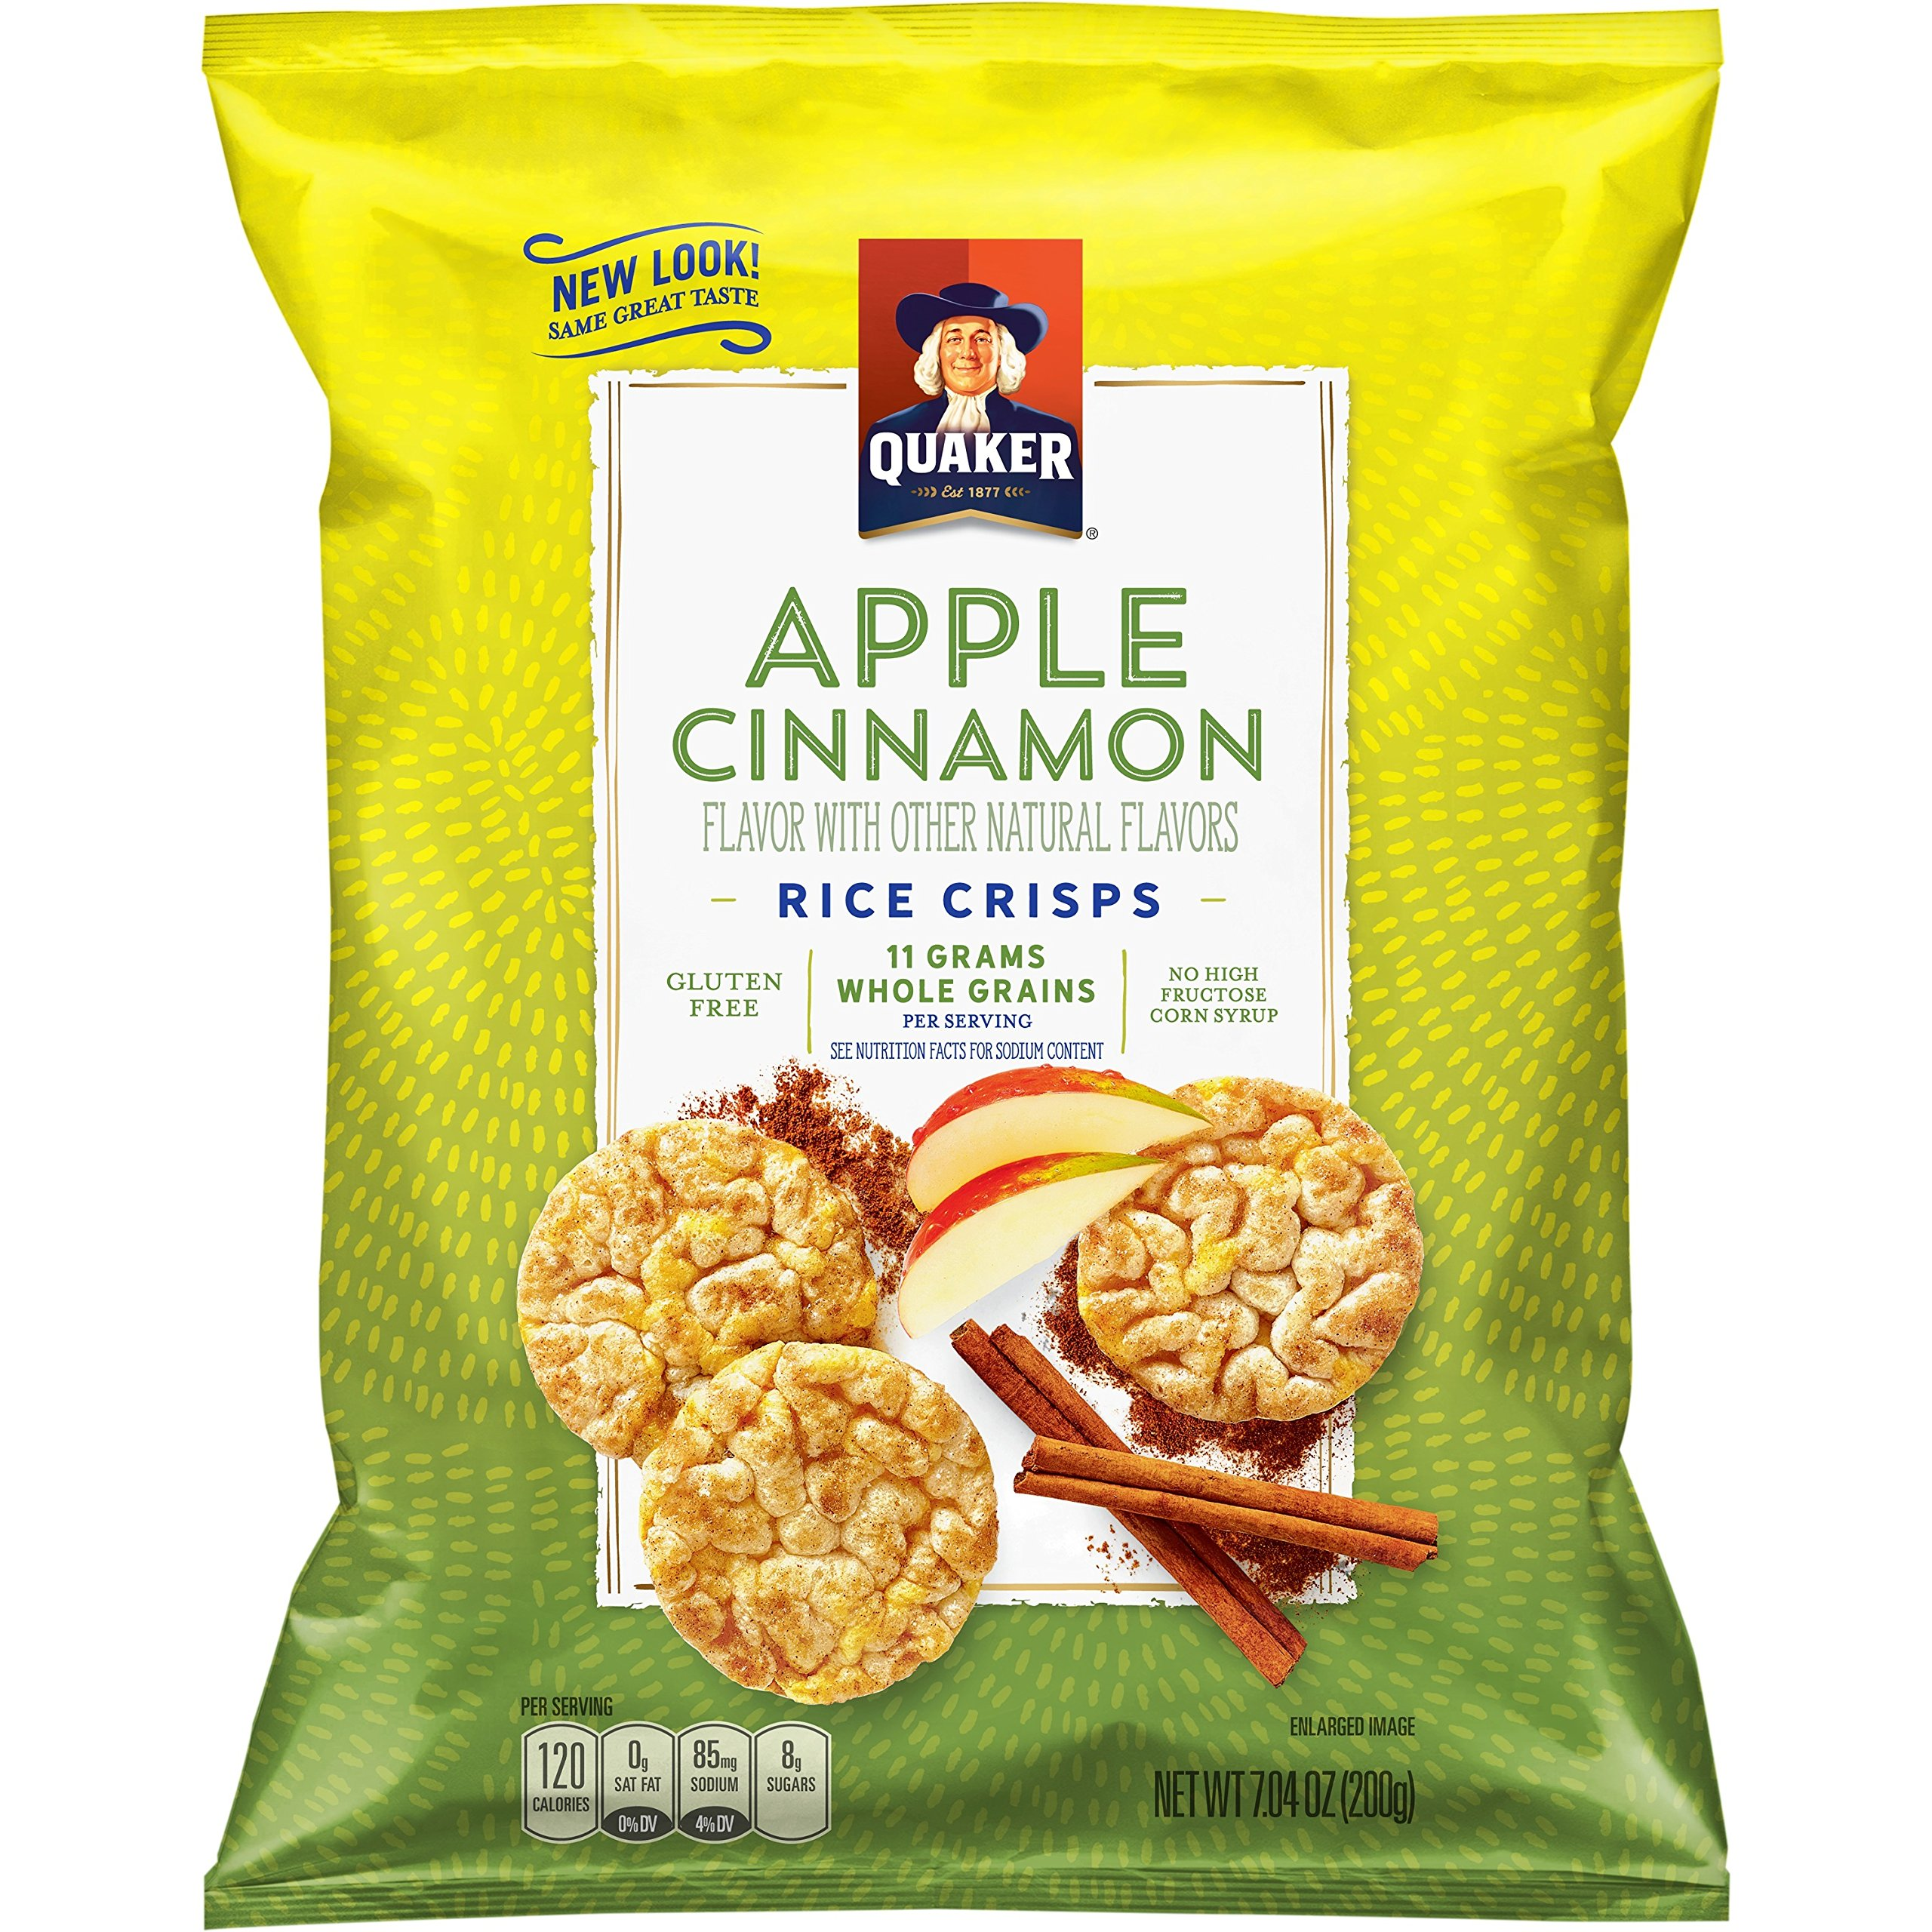 Quaker Rice Crisps, Apple Cinnamon, 7.04 oz Bags, 4 Count (Packaging May Vary) by Quaker